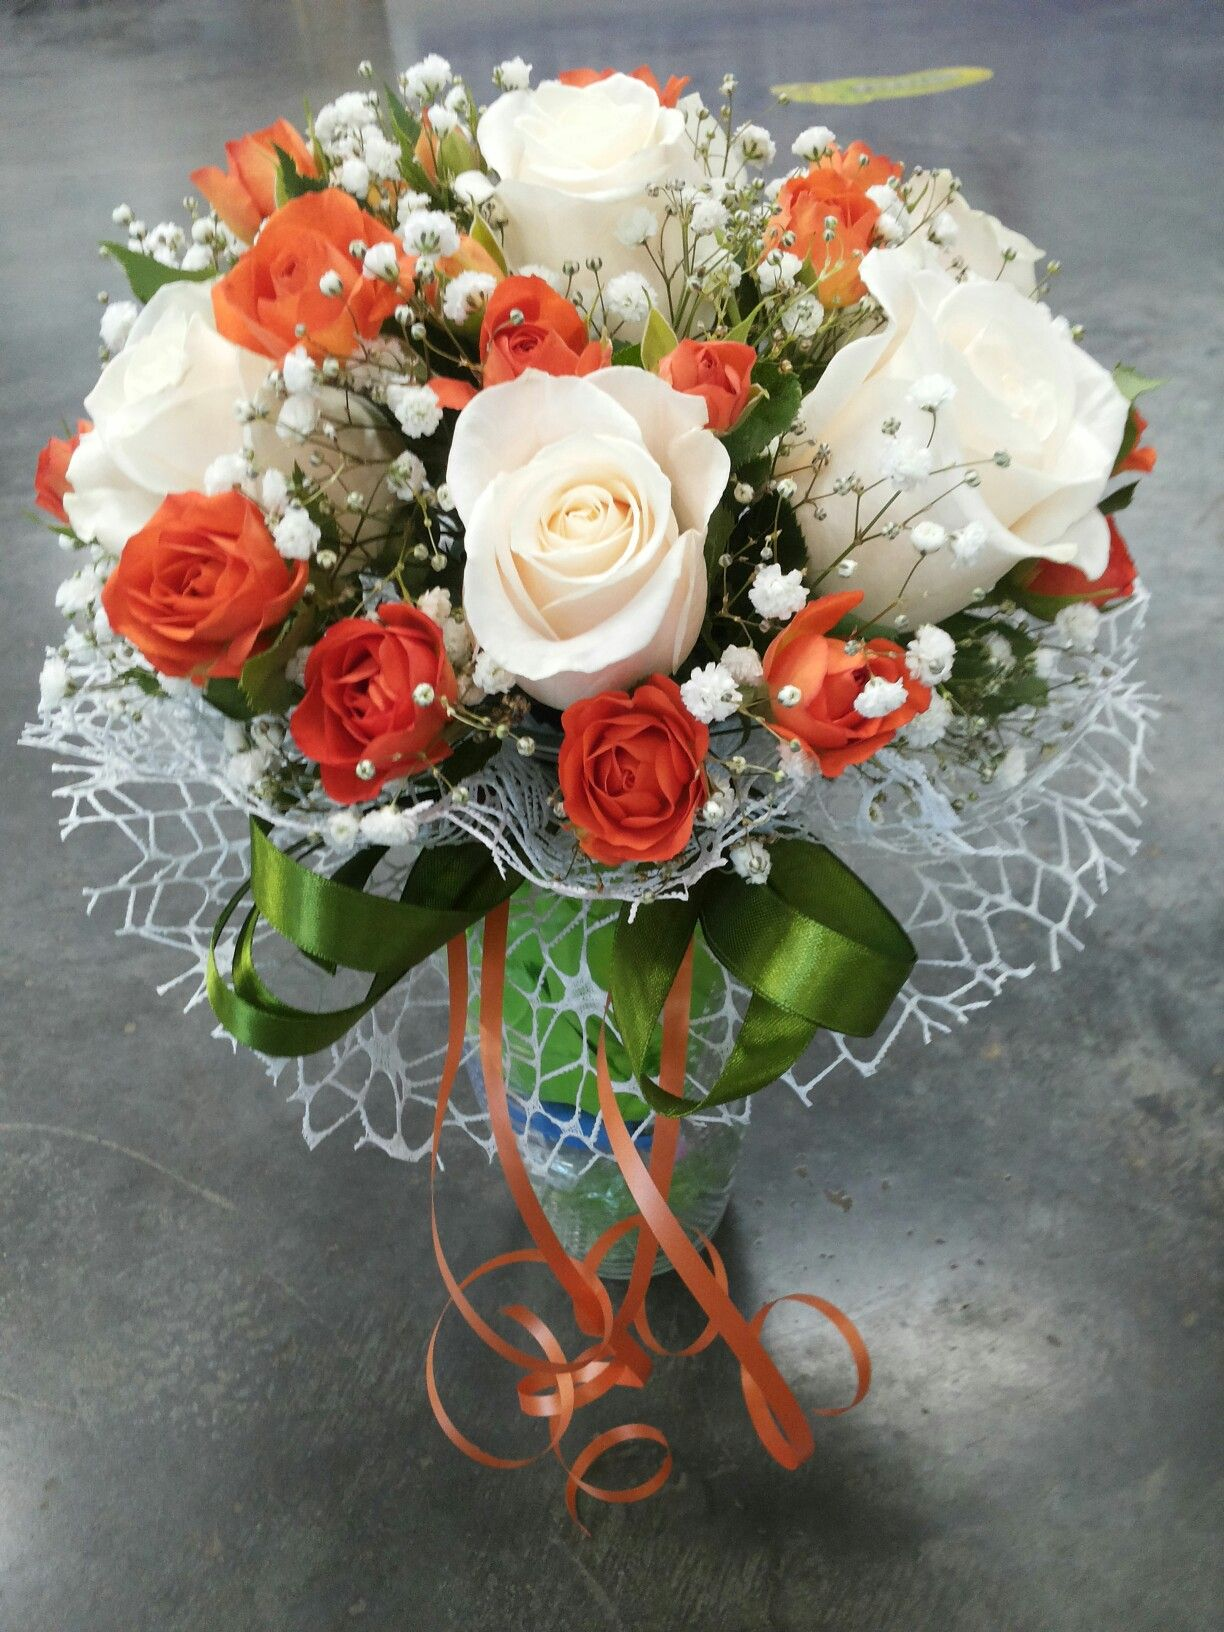 Pin by marjorie blessing on bridal bouquets pinterest flower pin by marjorie blessing on bridal bouquets pinterest flower arrangements flower and floral arrangement izmirmasajfo